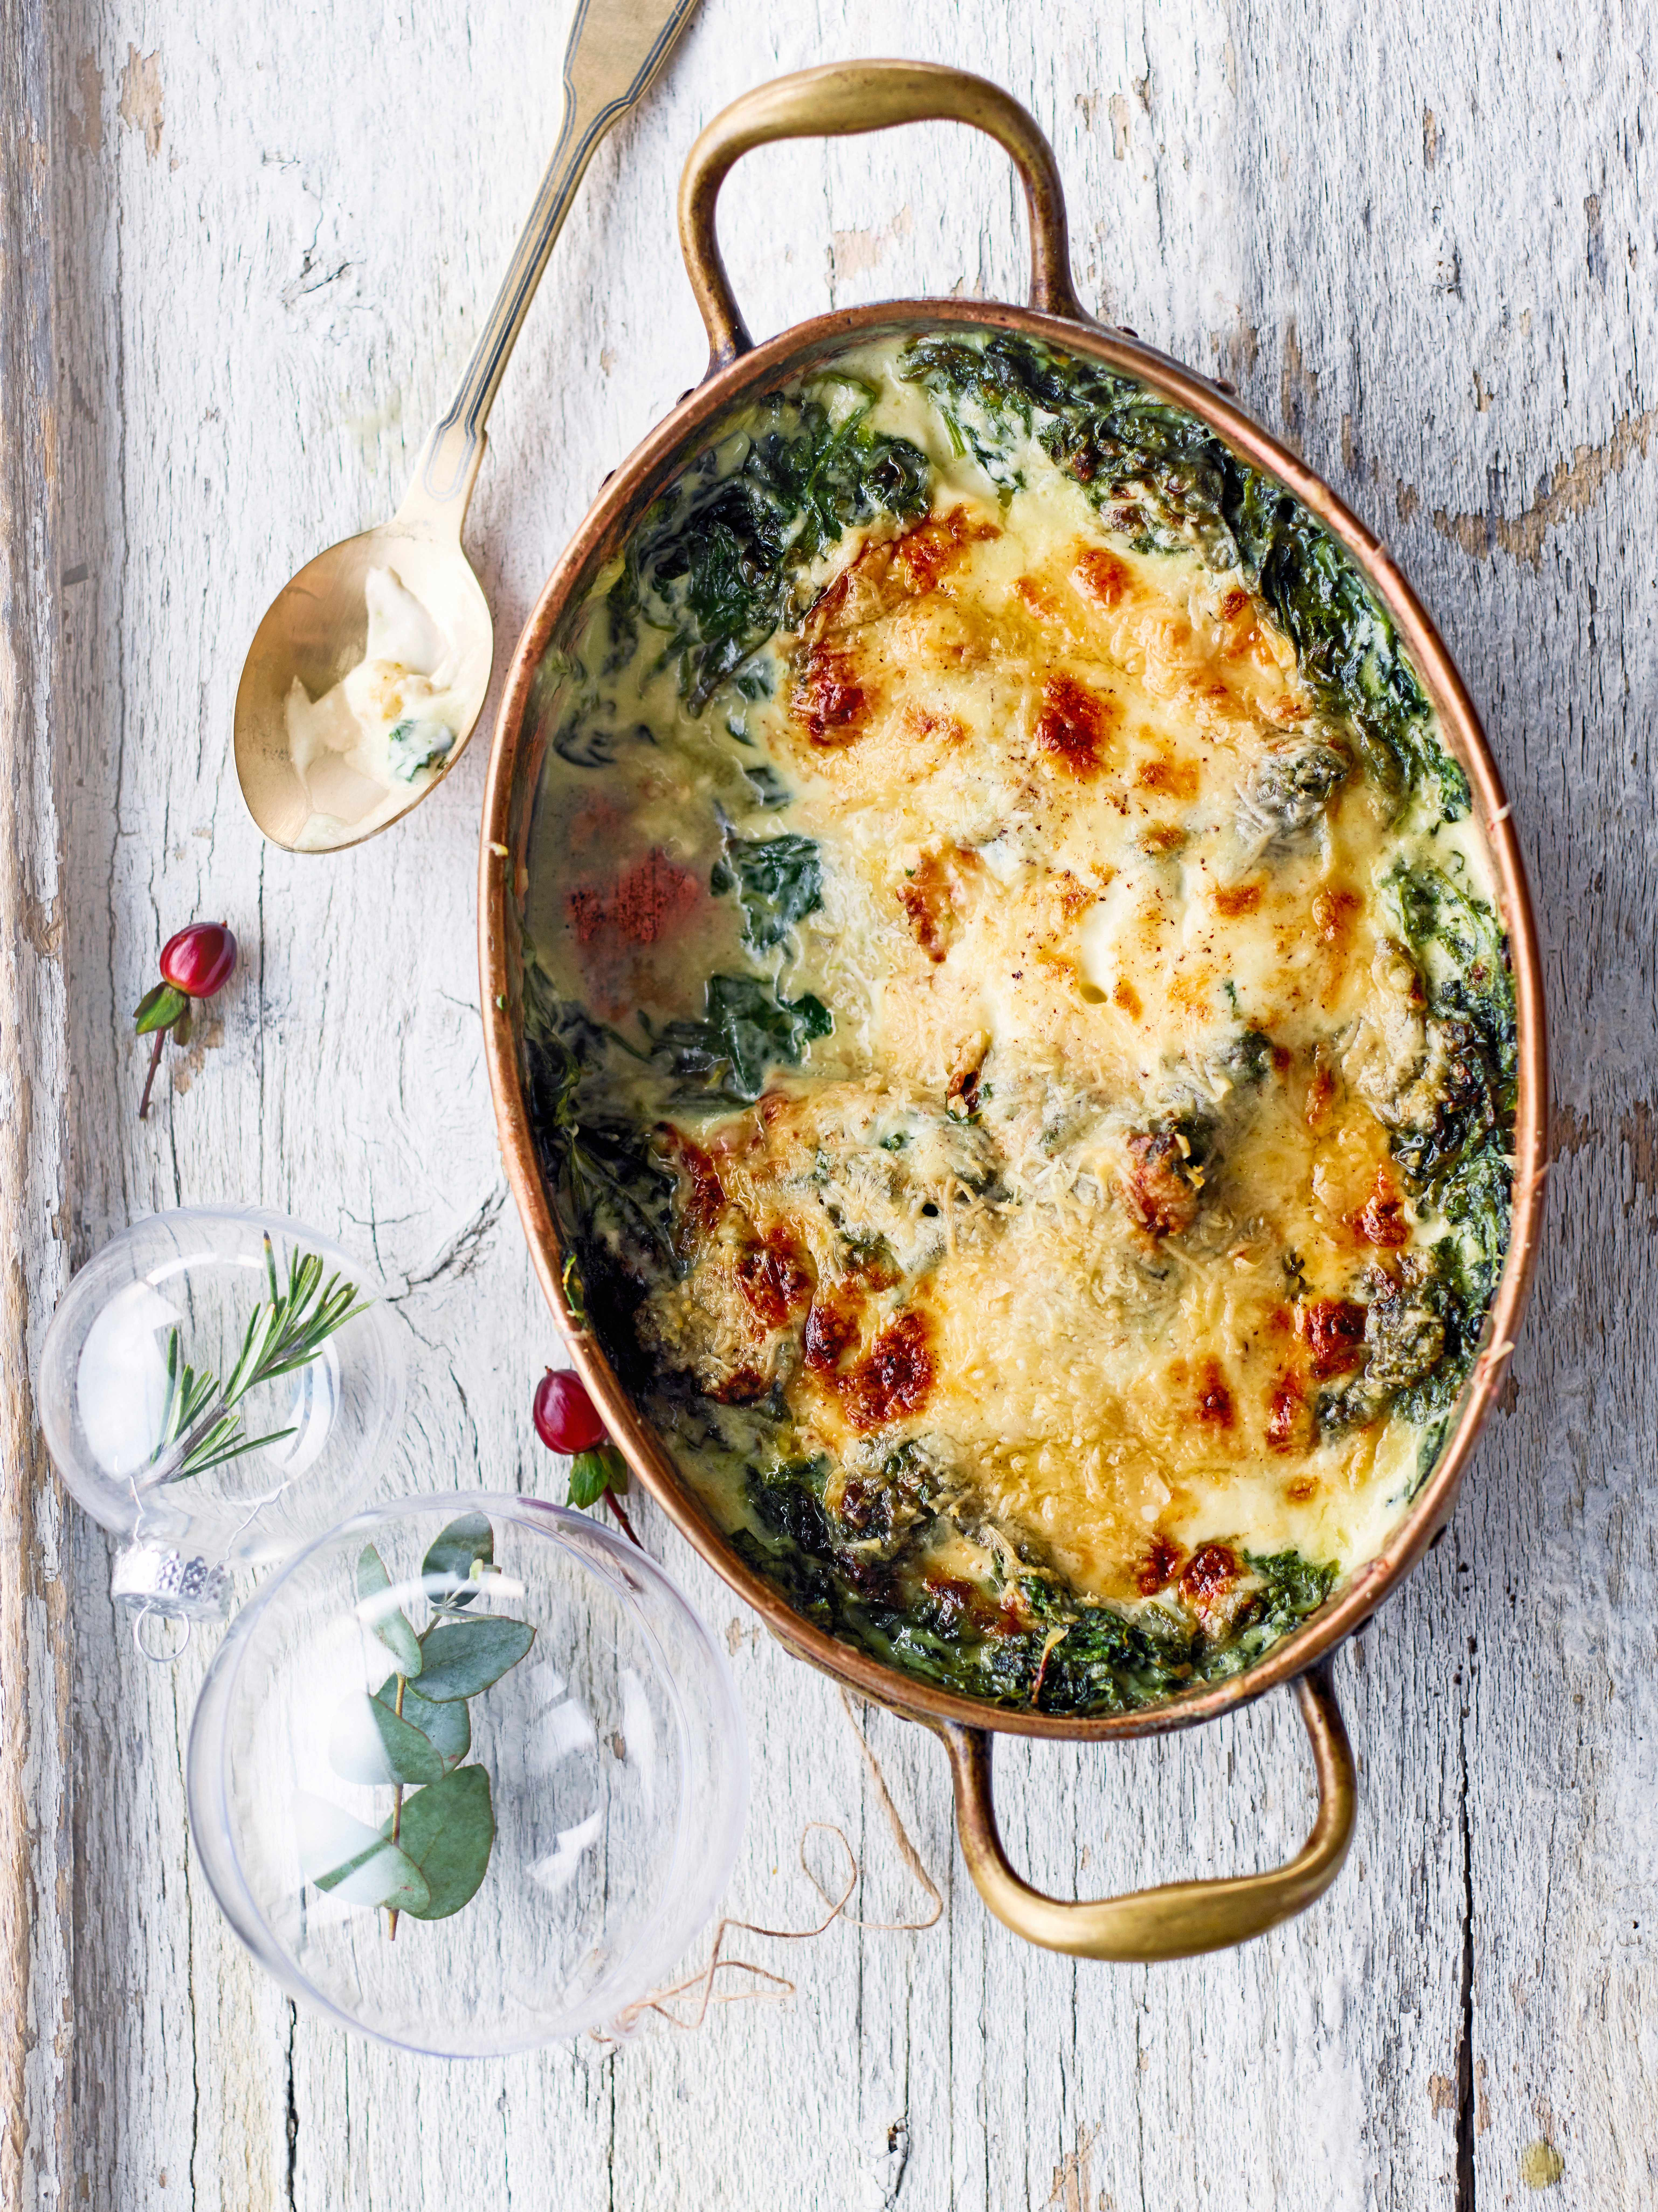 Creamed Spinach Recipe With Nutmeg And Gruyère